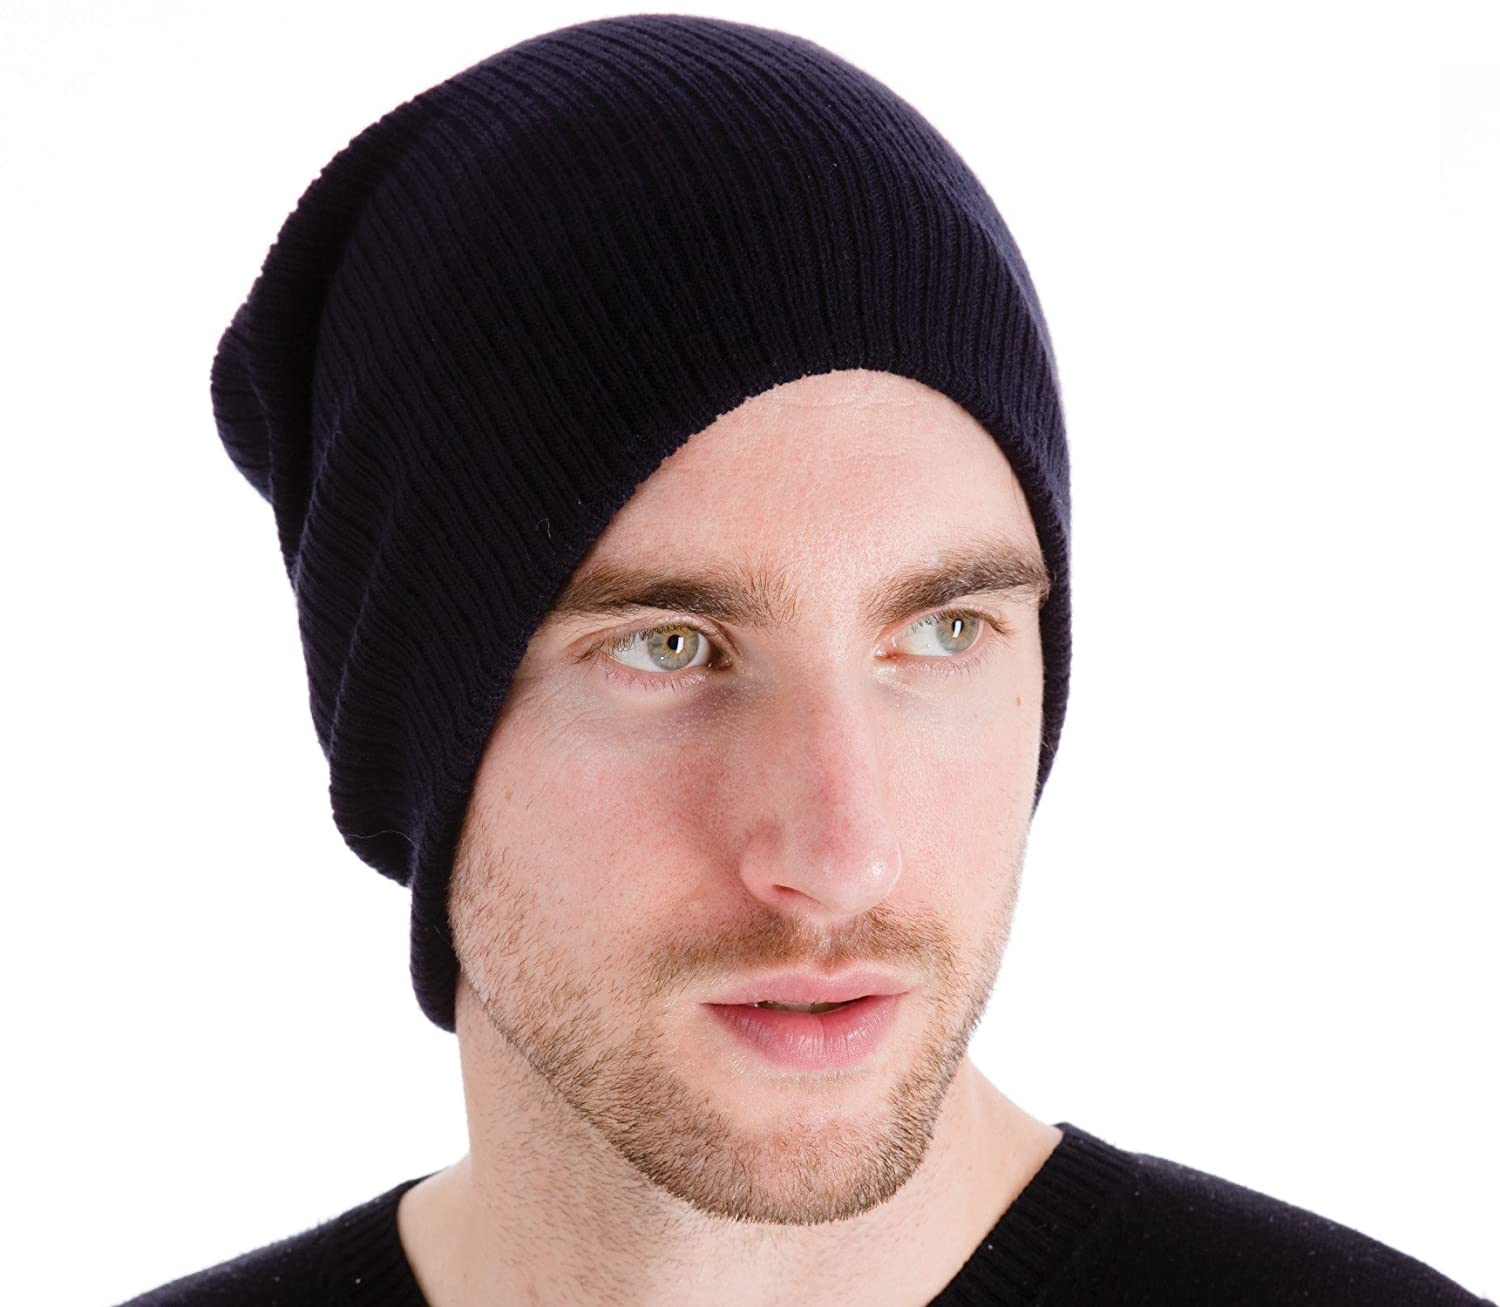 Thinsulate Mens Long Oversized Slouch Acrylic Knitted Beanie Winter Hat  Black GL326  Amazon.it  Sport e tempo libero 0c073d3e039